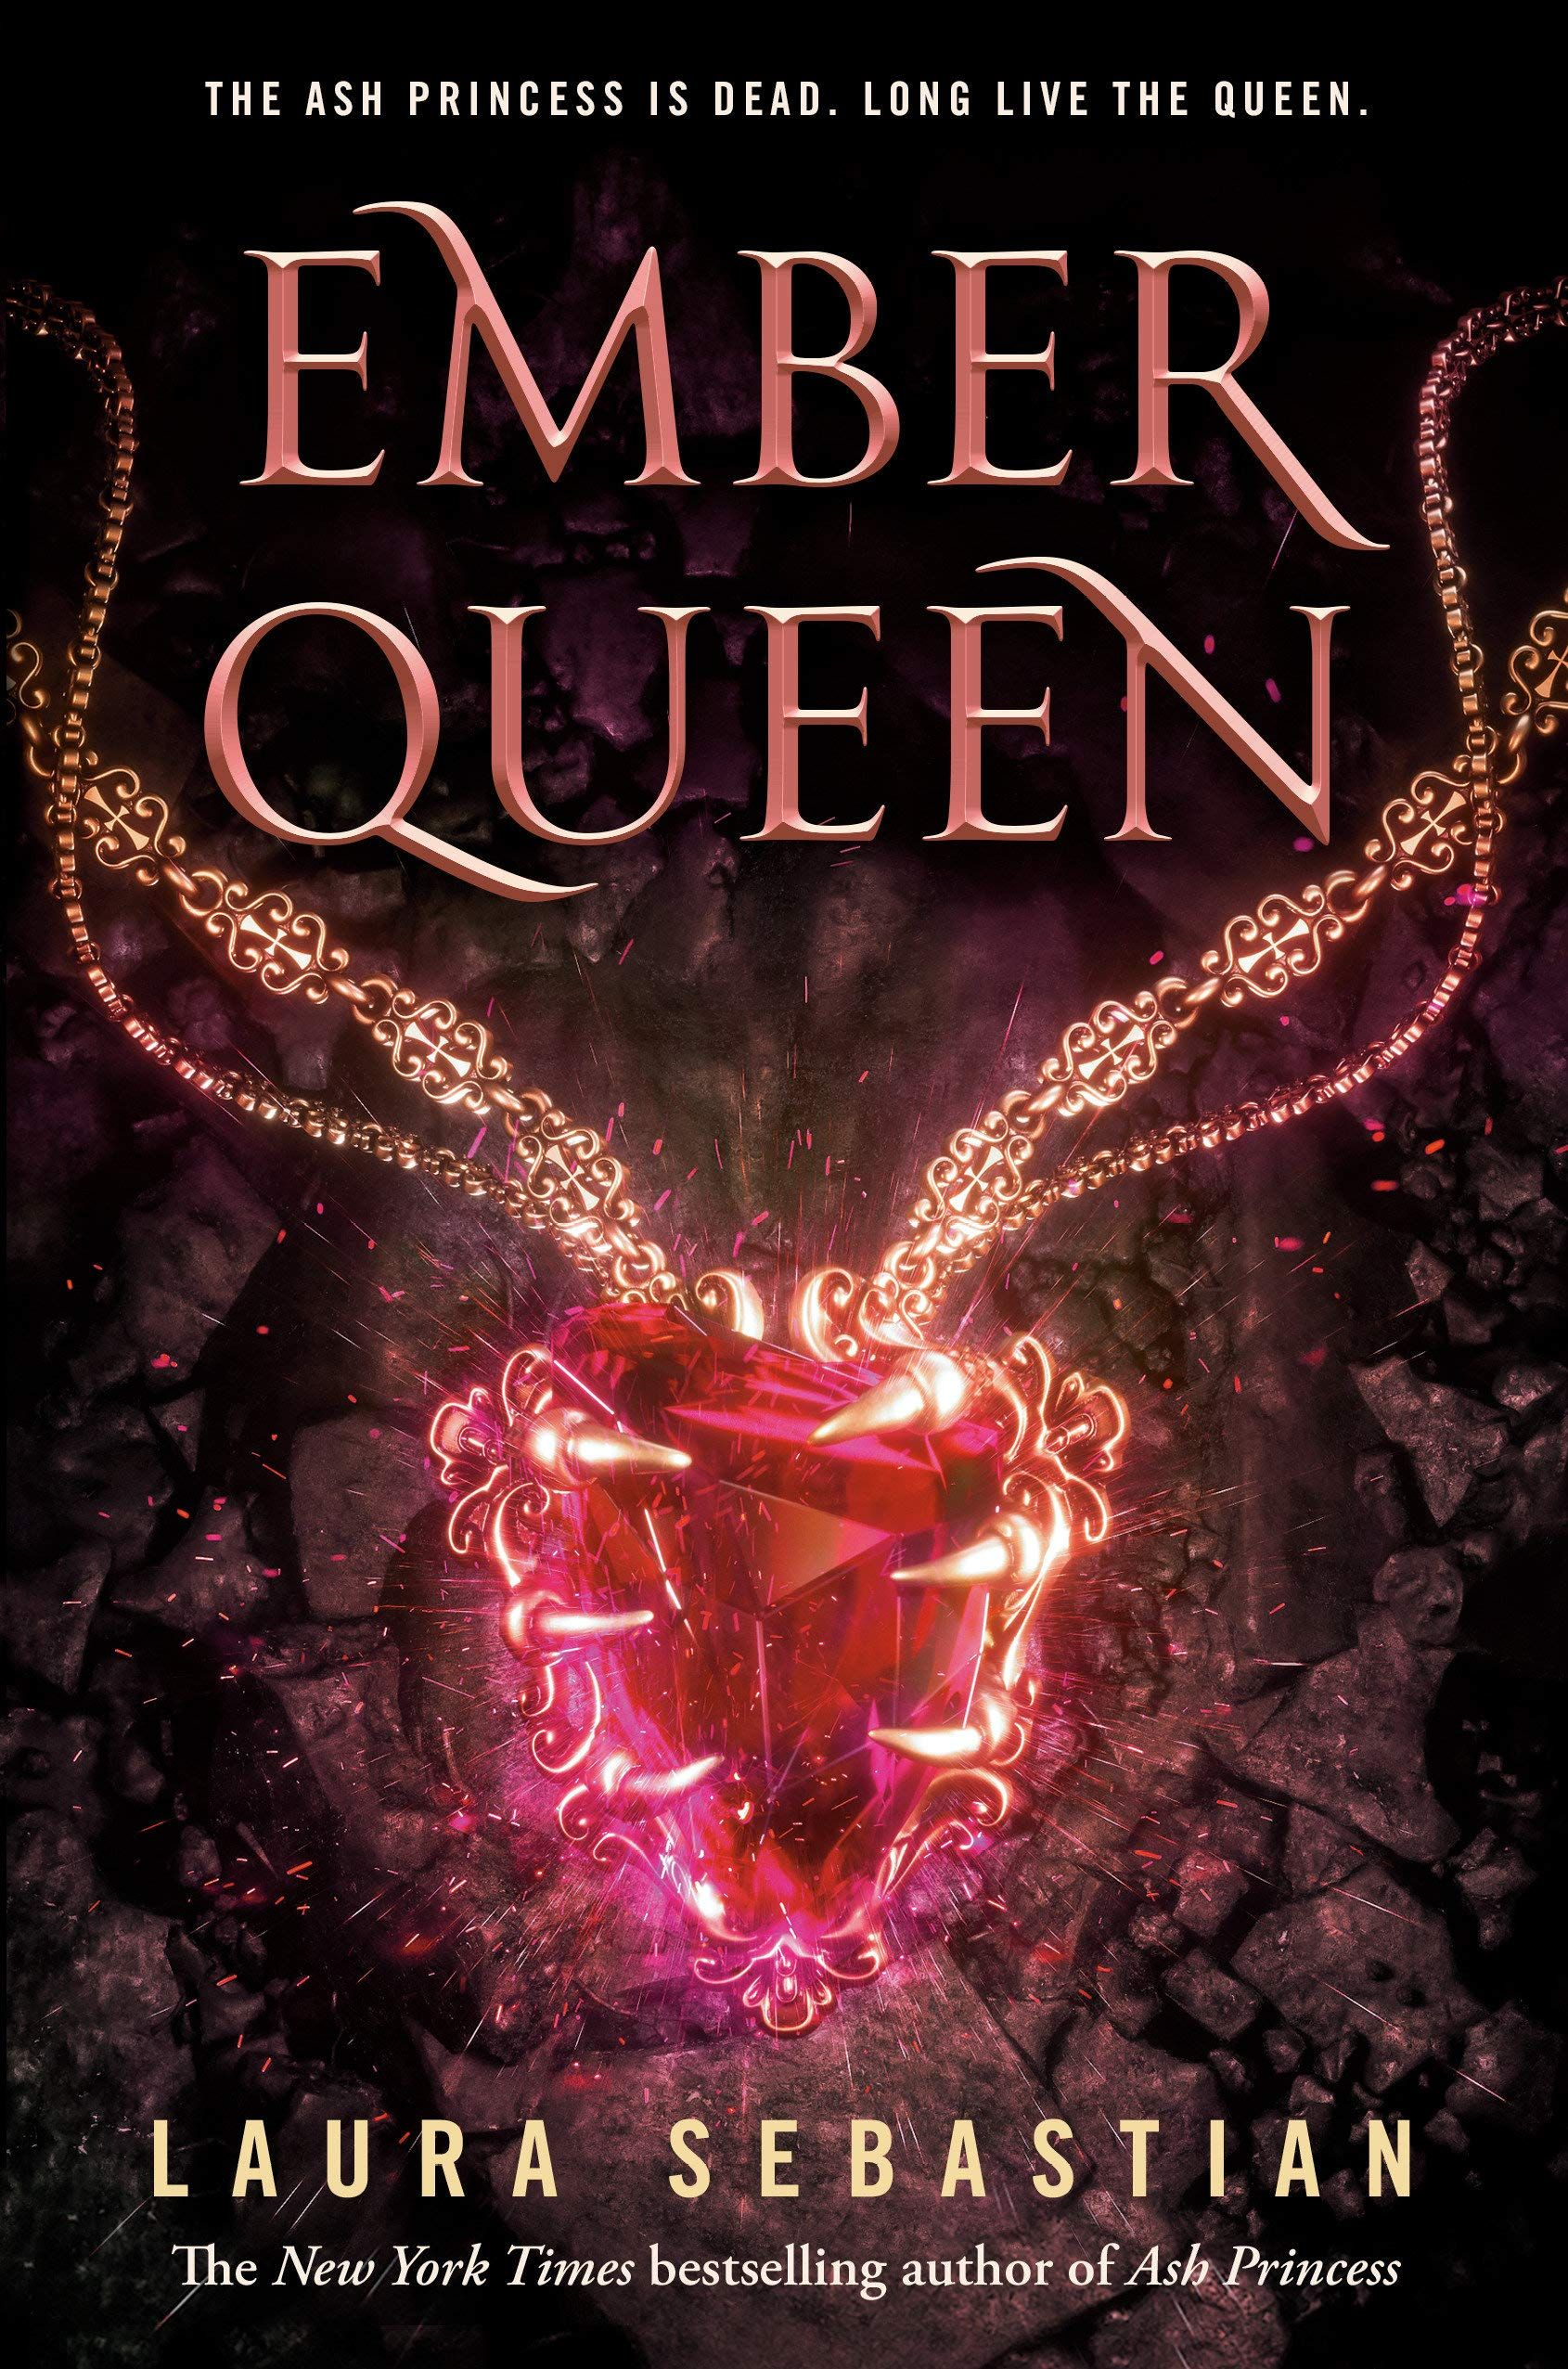 Pdf Ember Queen Ash Princess Trilogy 3 By Laura Sebastian Ember Queen Laura Sebastian Pdf Ember Queen La In 2020 Book Release Ya Book Covers Bestselling Books